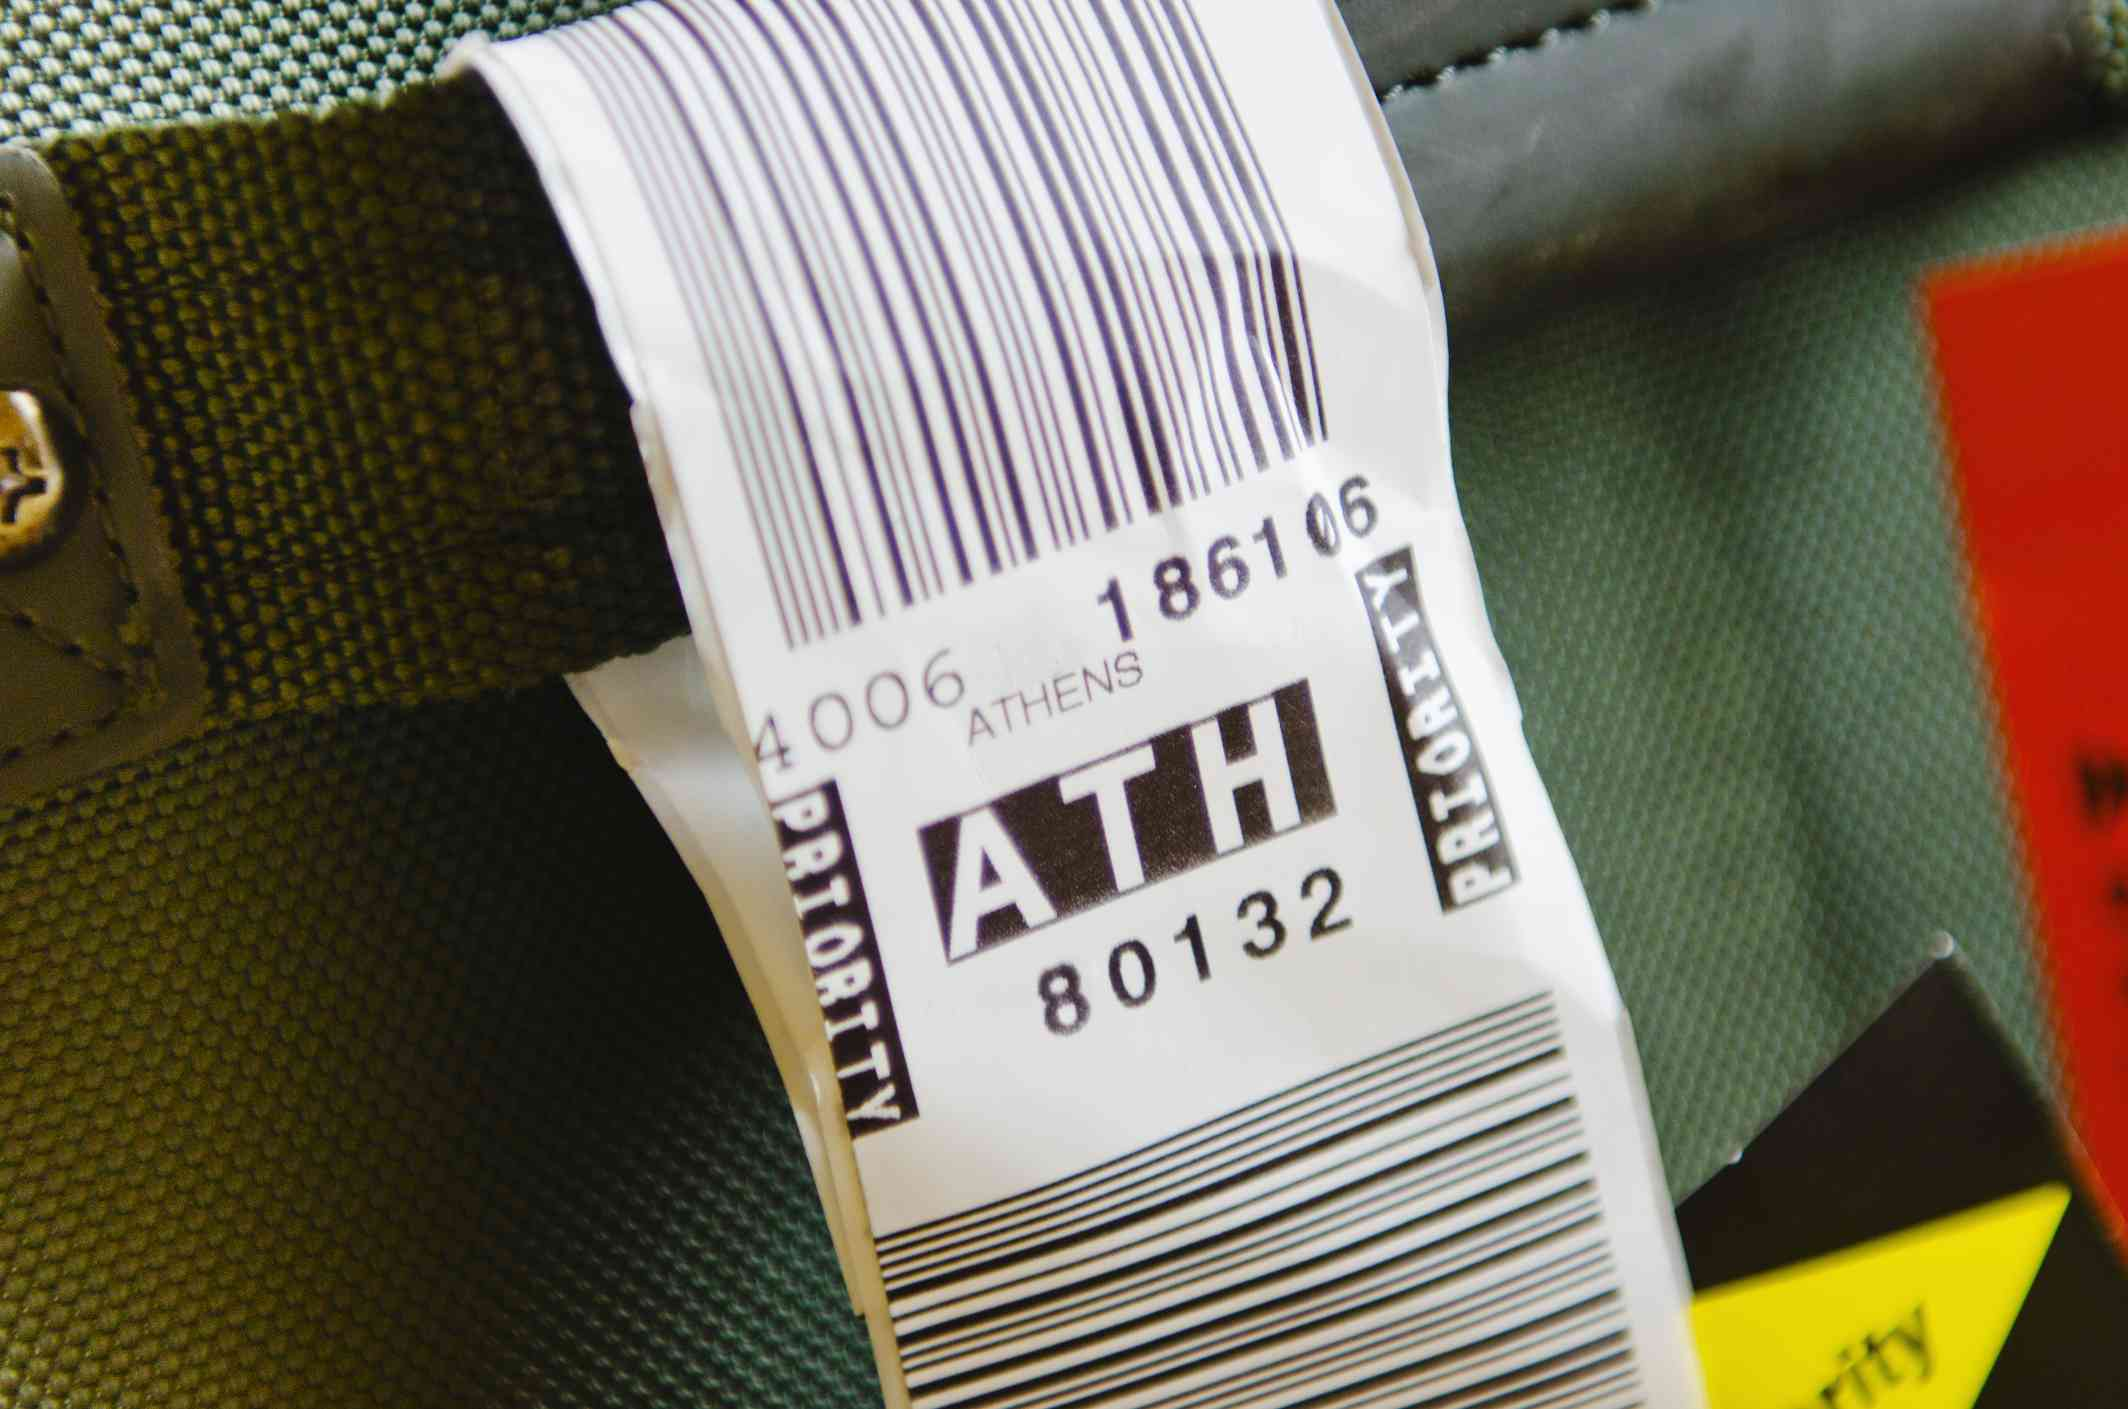 A checked bag tagged for Athens International Airport